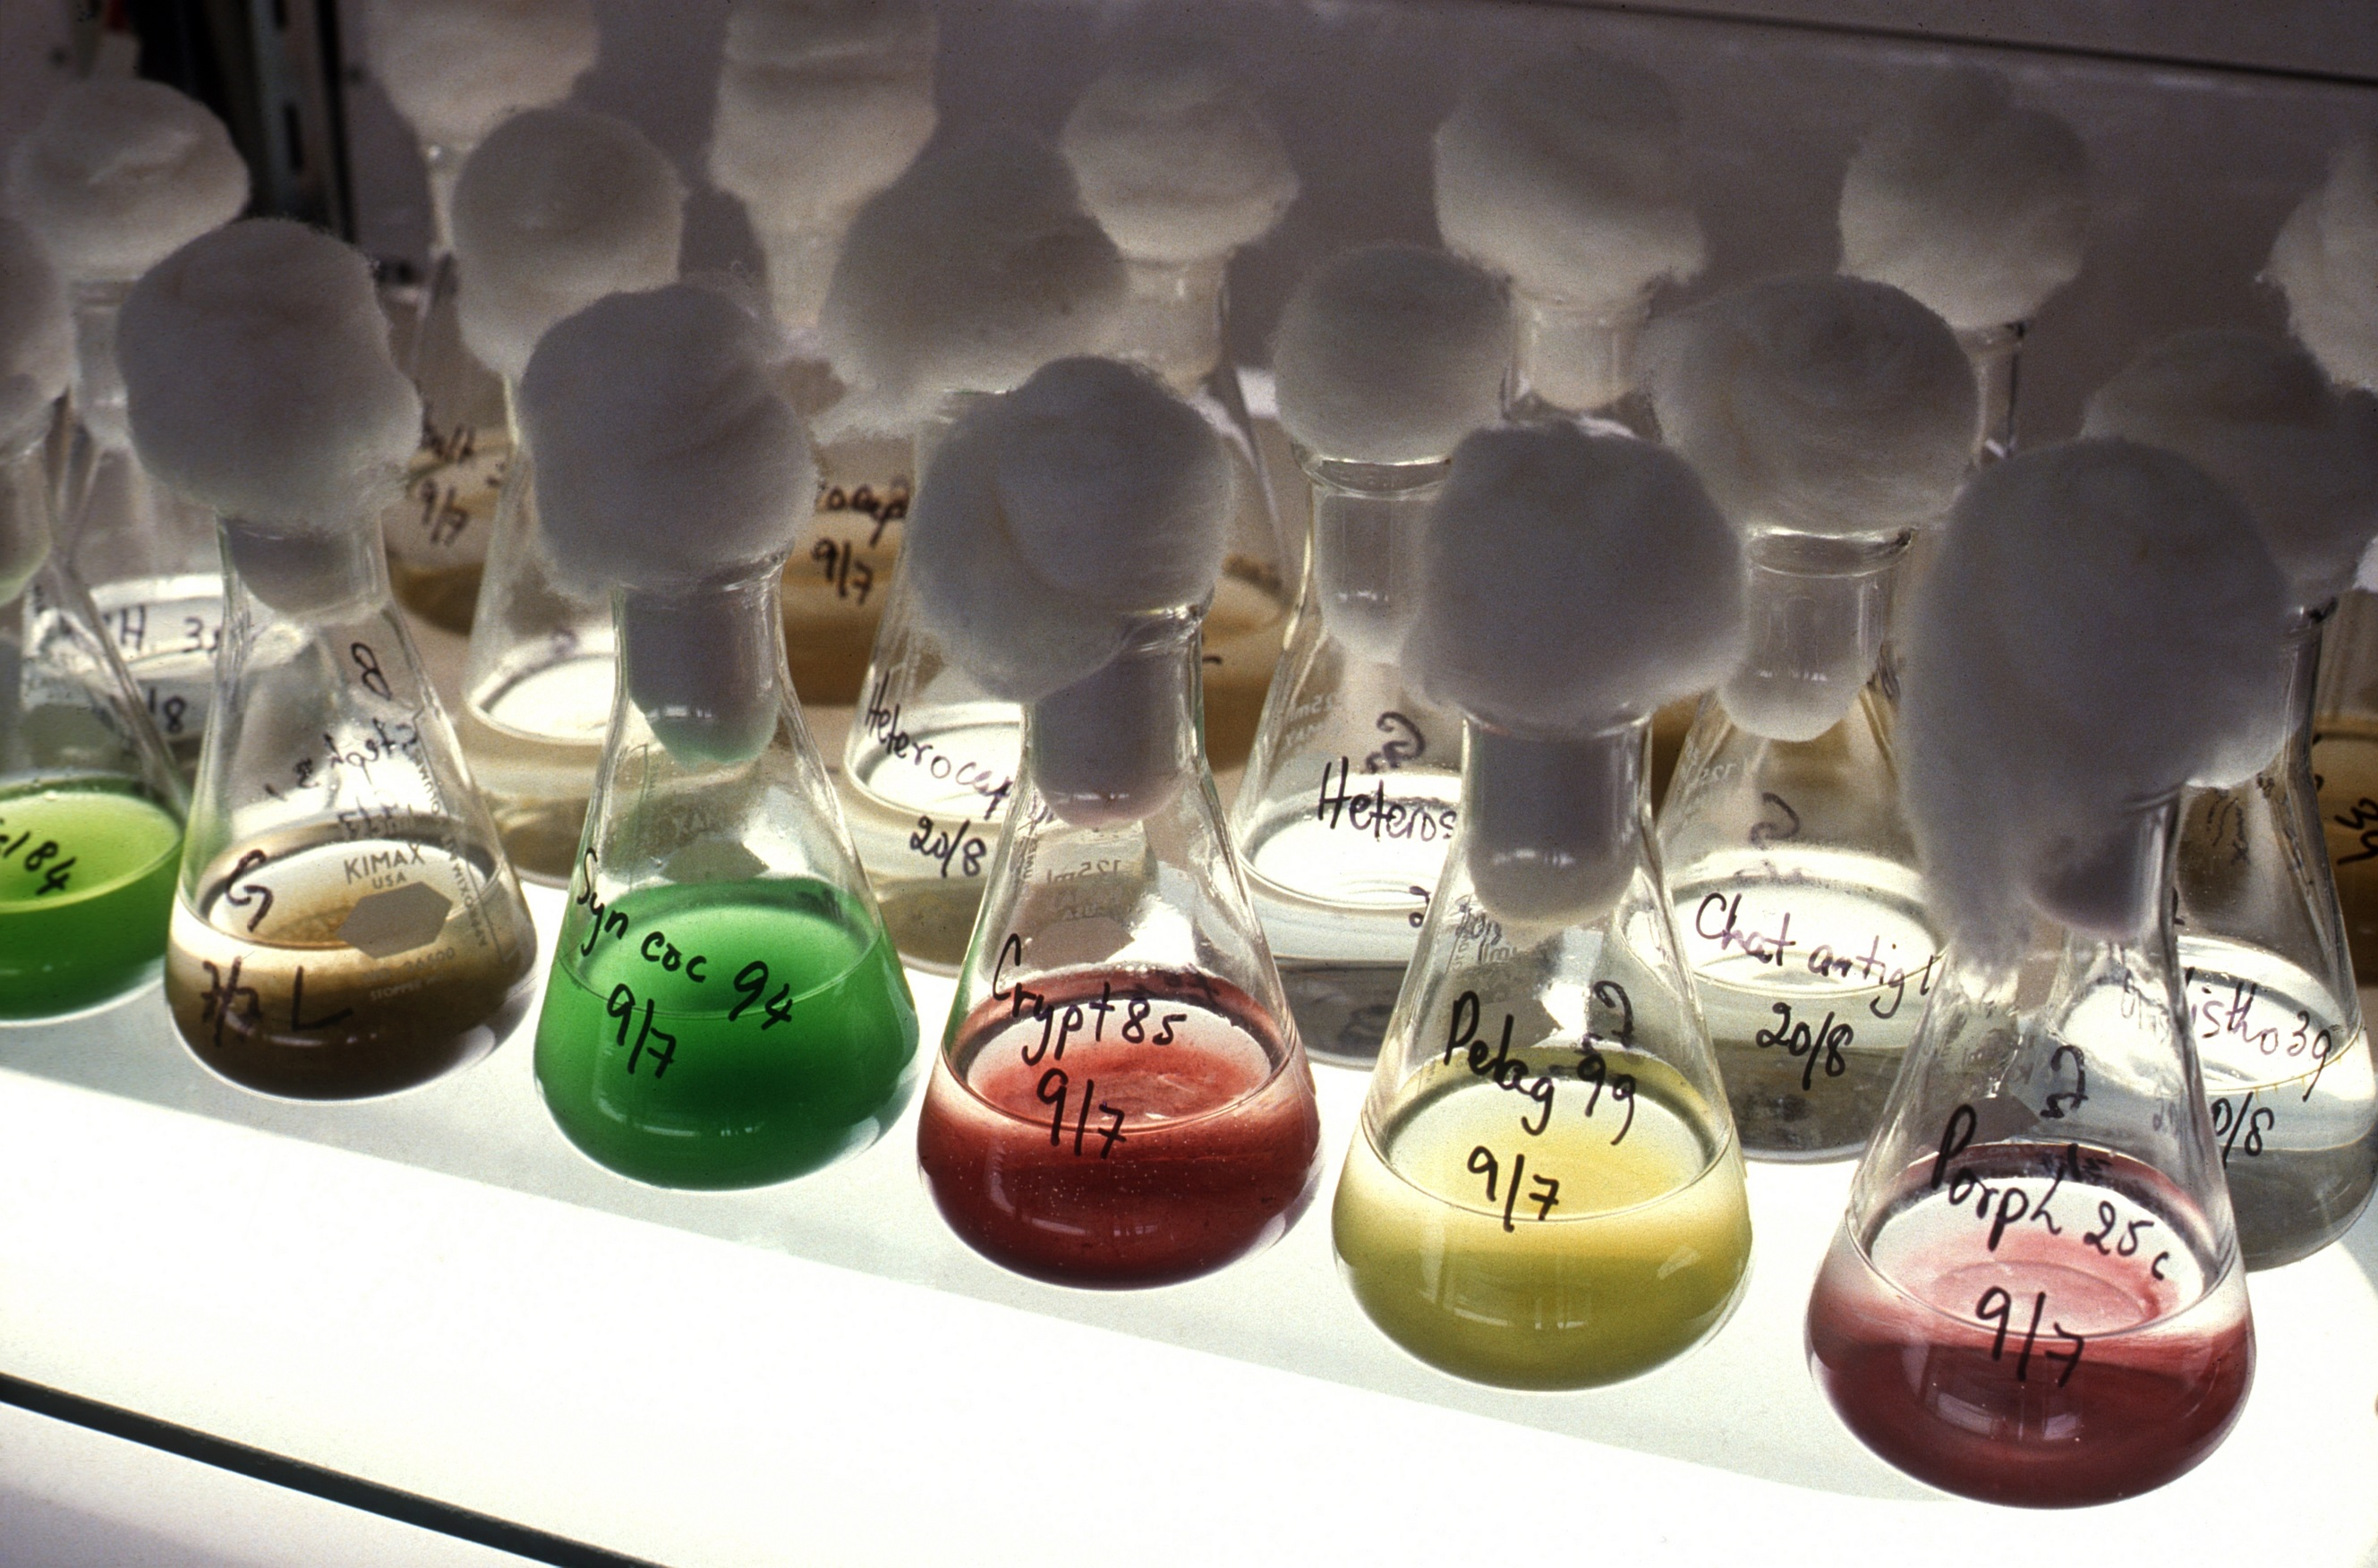 Mikroalgen_Microalgae cultures in the CSIRO Microalgae Collection laboratory._CC BY 3.0.jpg